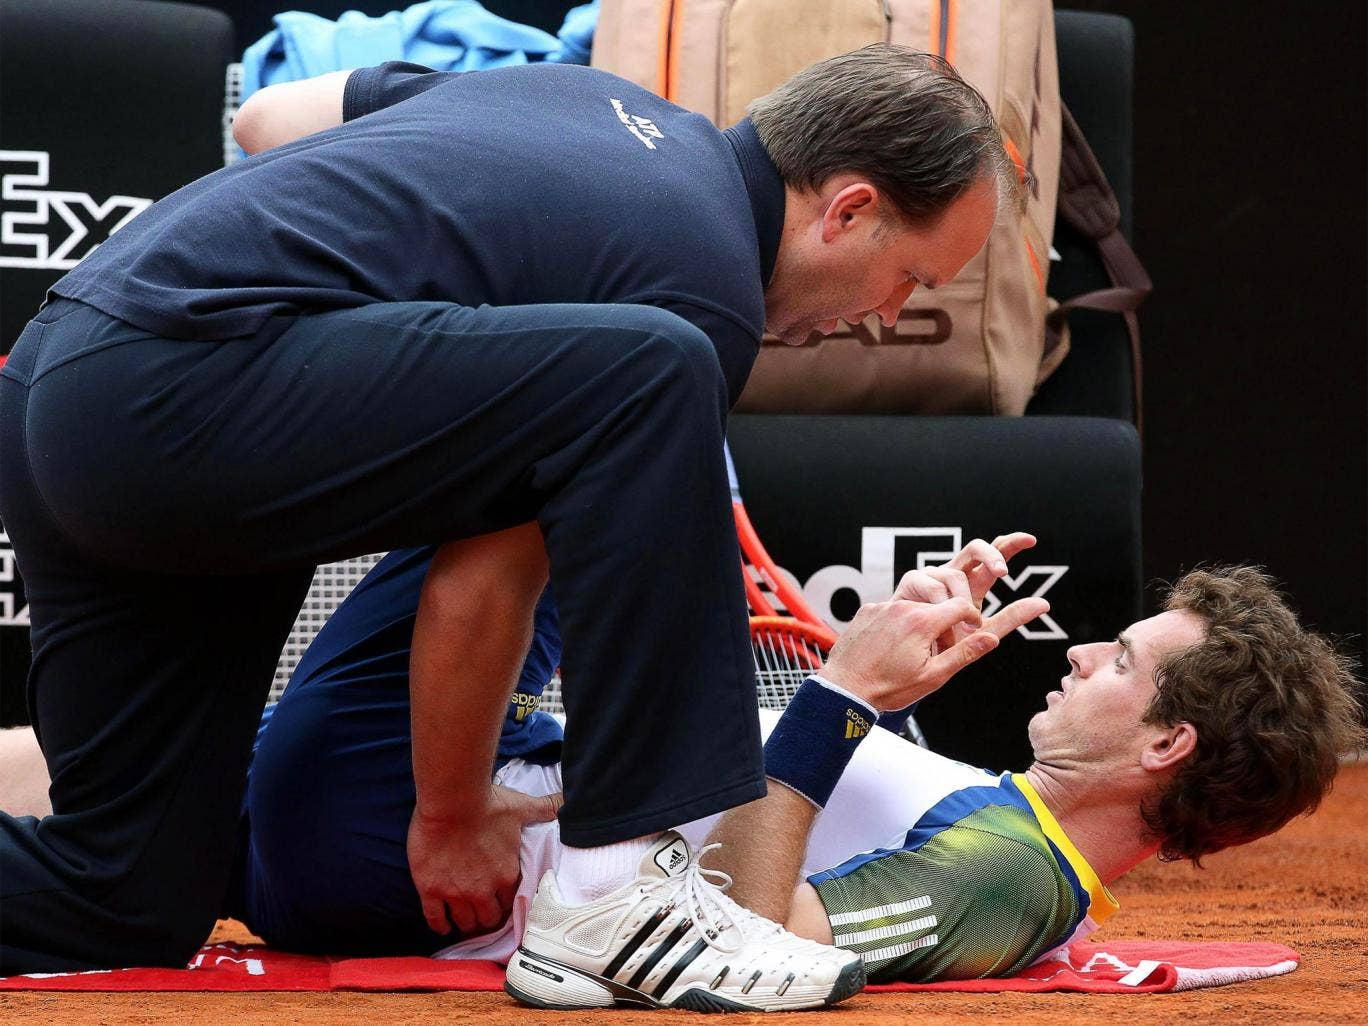 Andy Murray receives treatment on his back during his game in Rome against Marcel Granollers last week